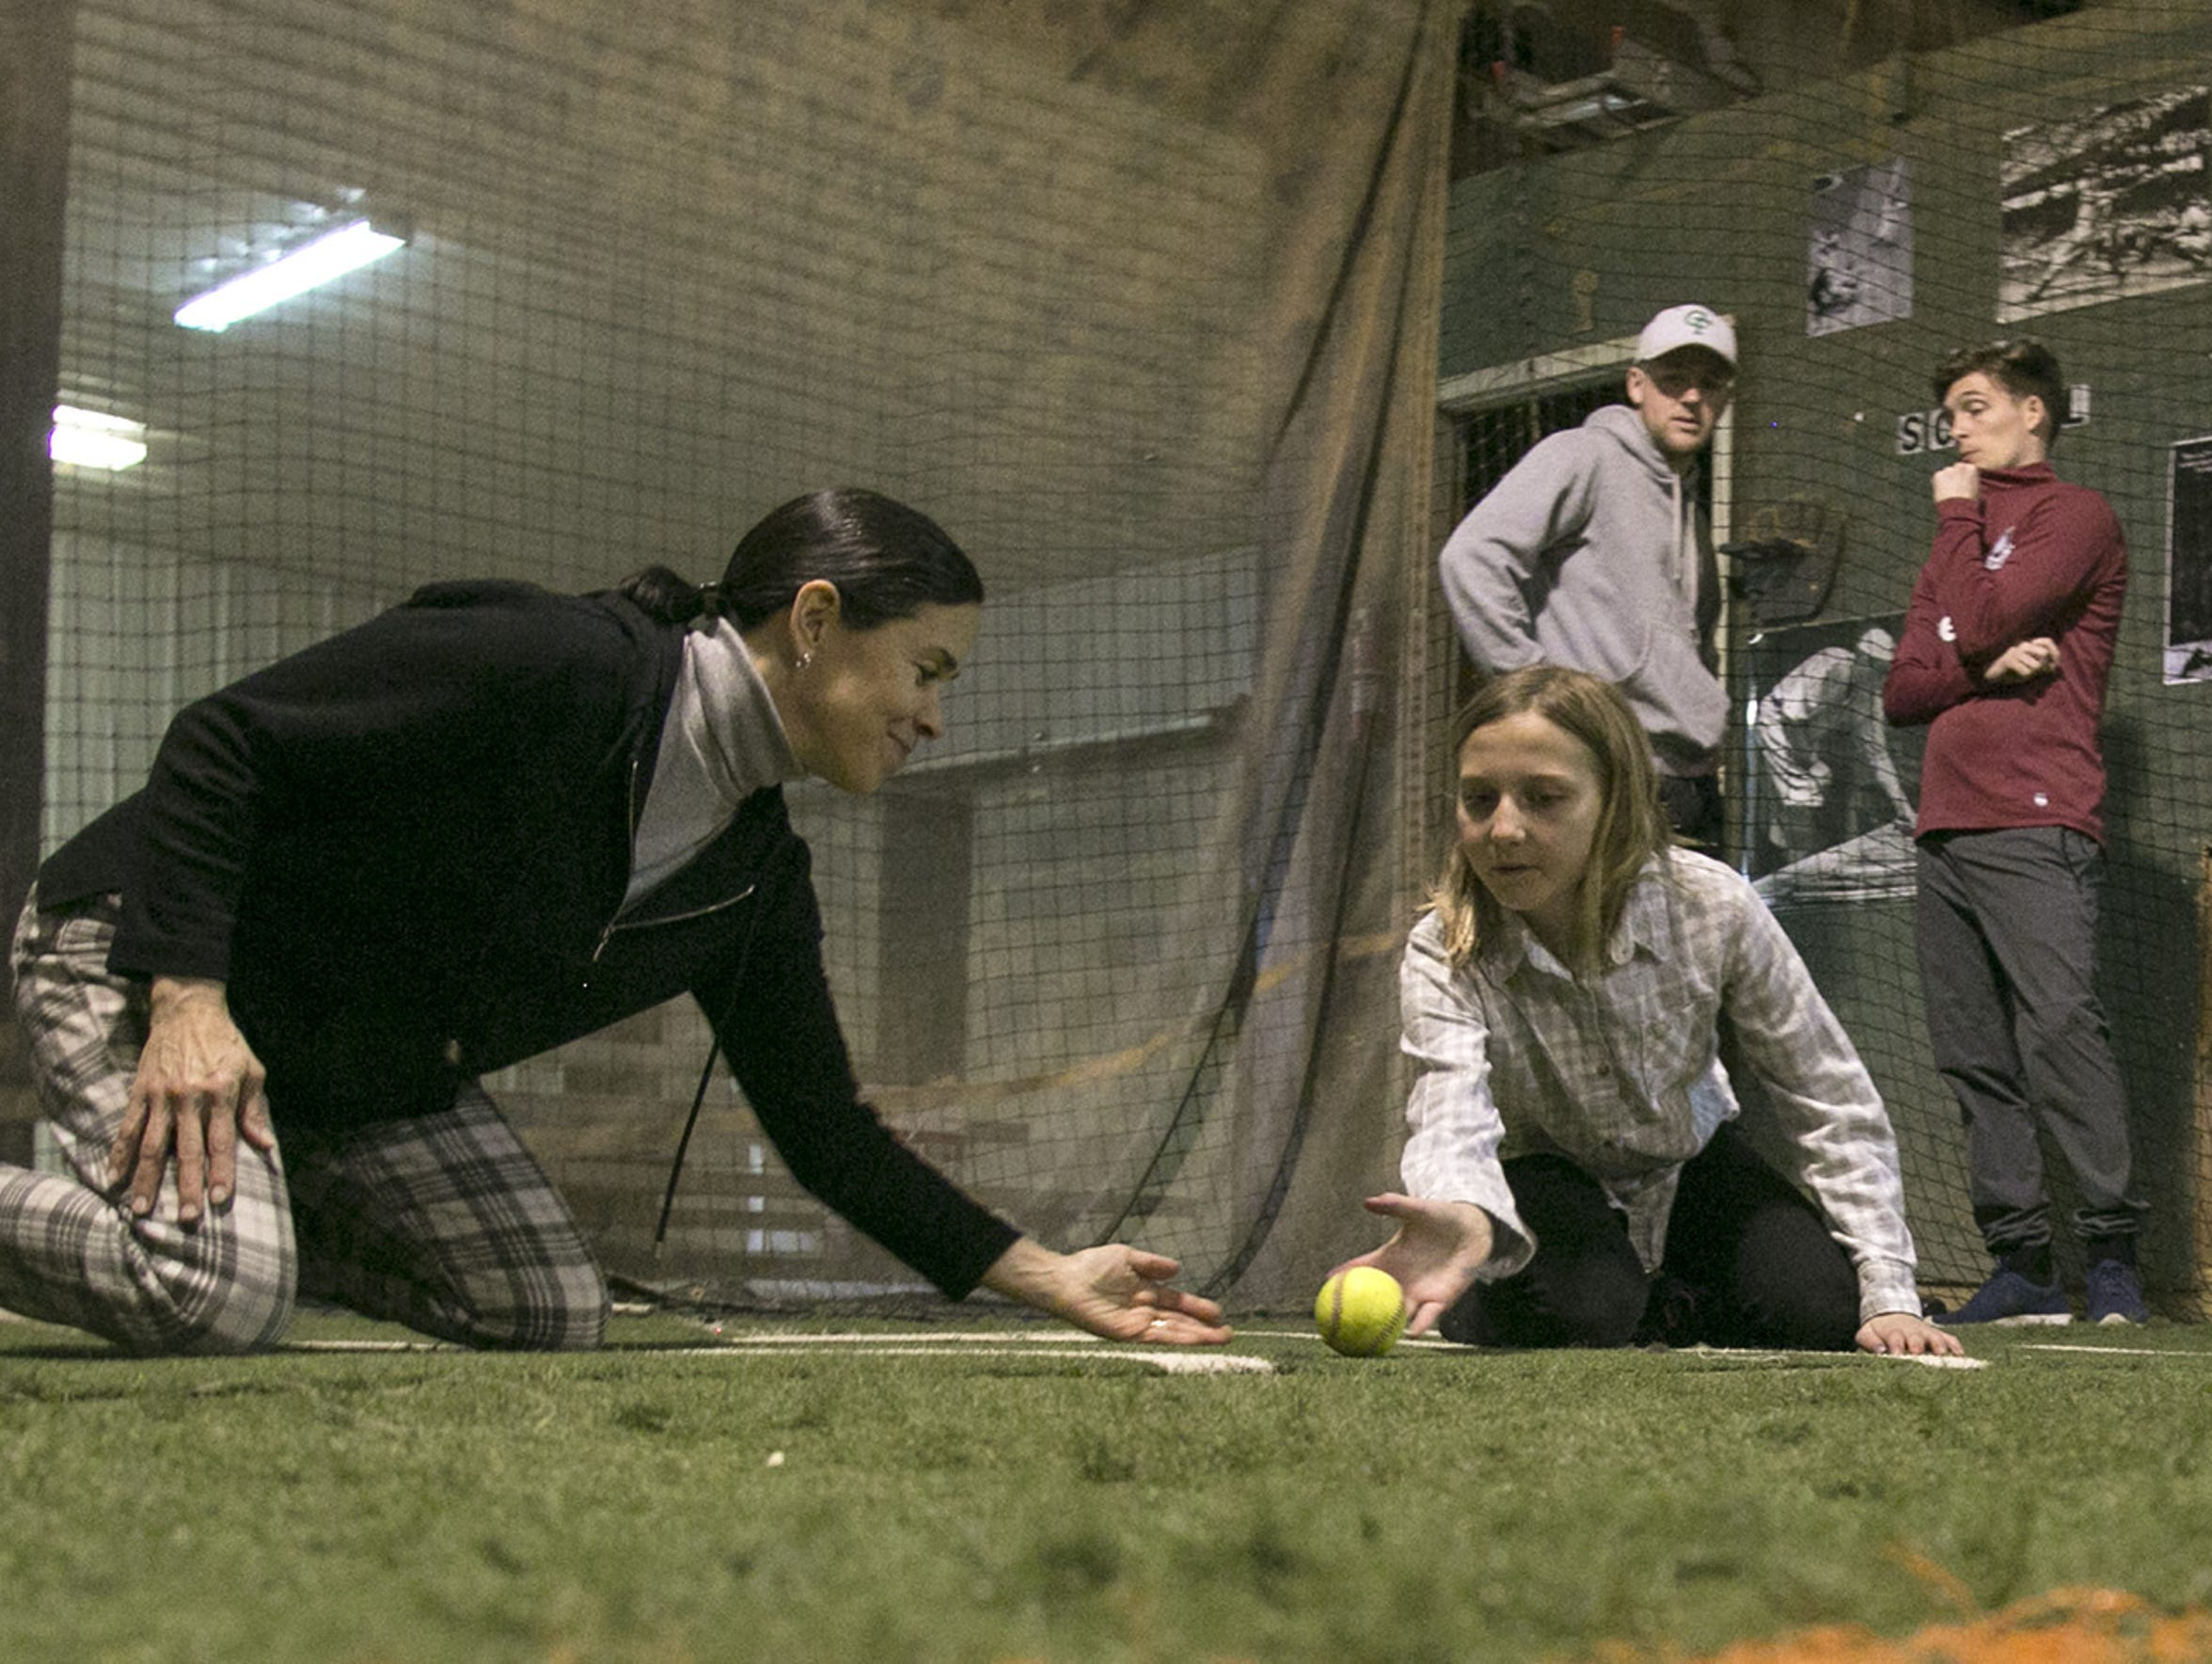 Jennifer Staab teaches a bit of baseball to her granddaughter